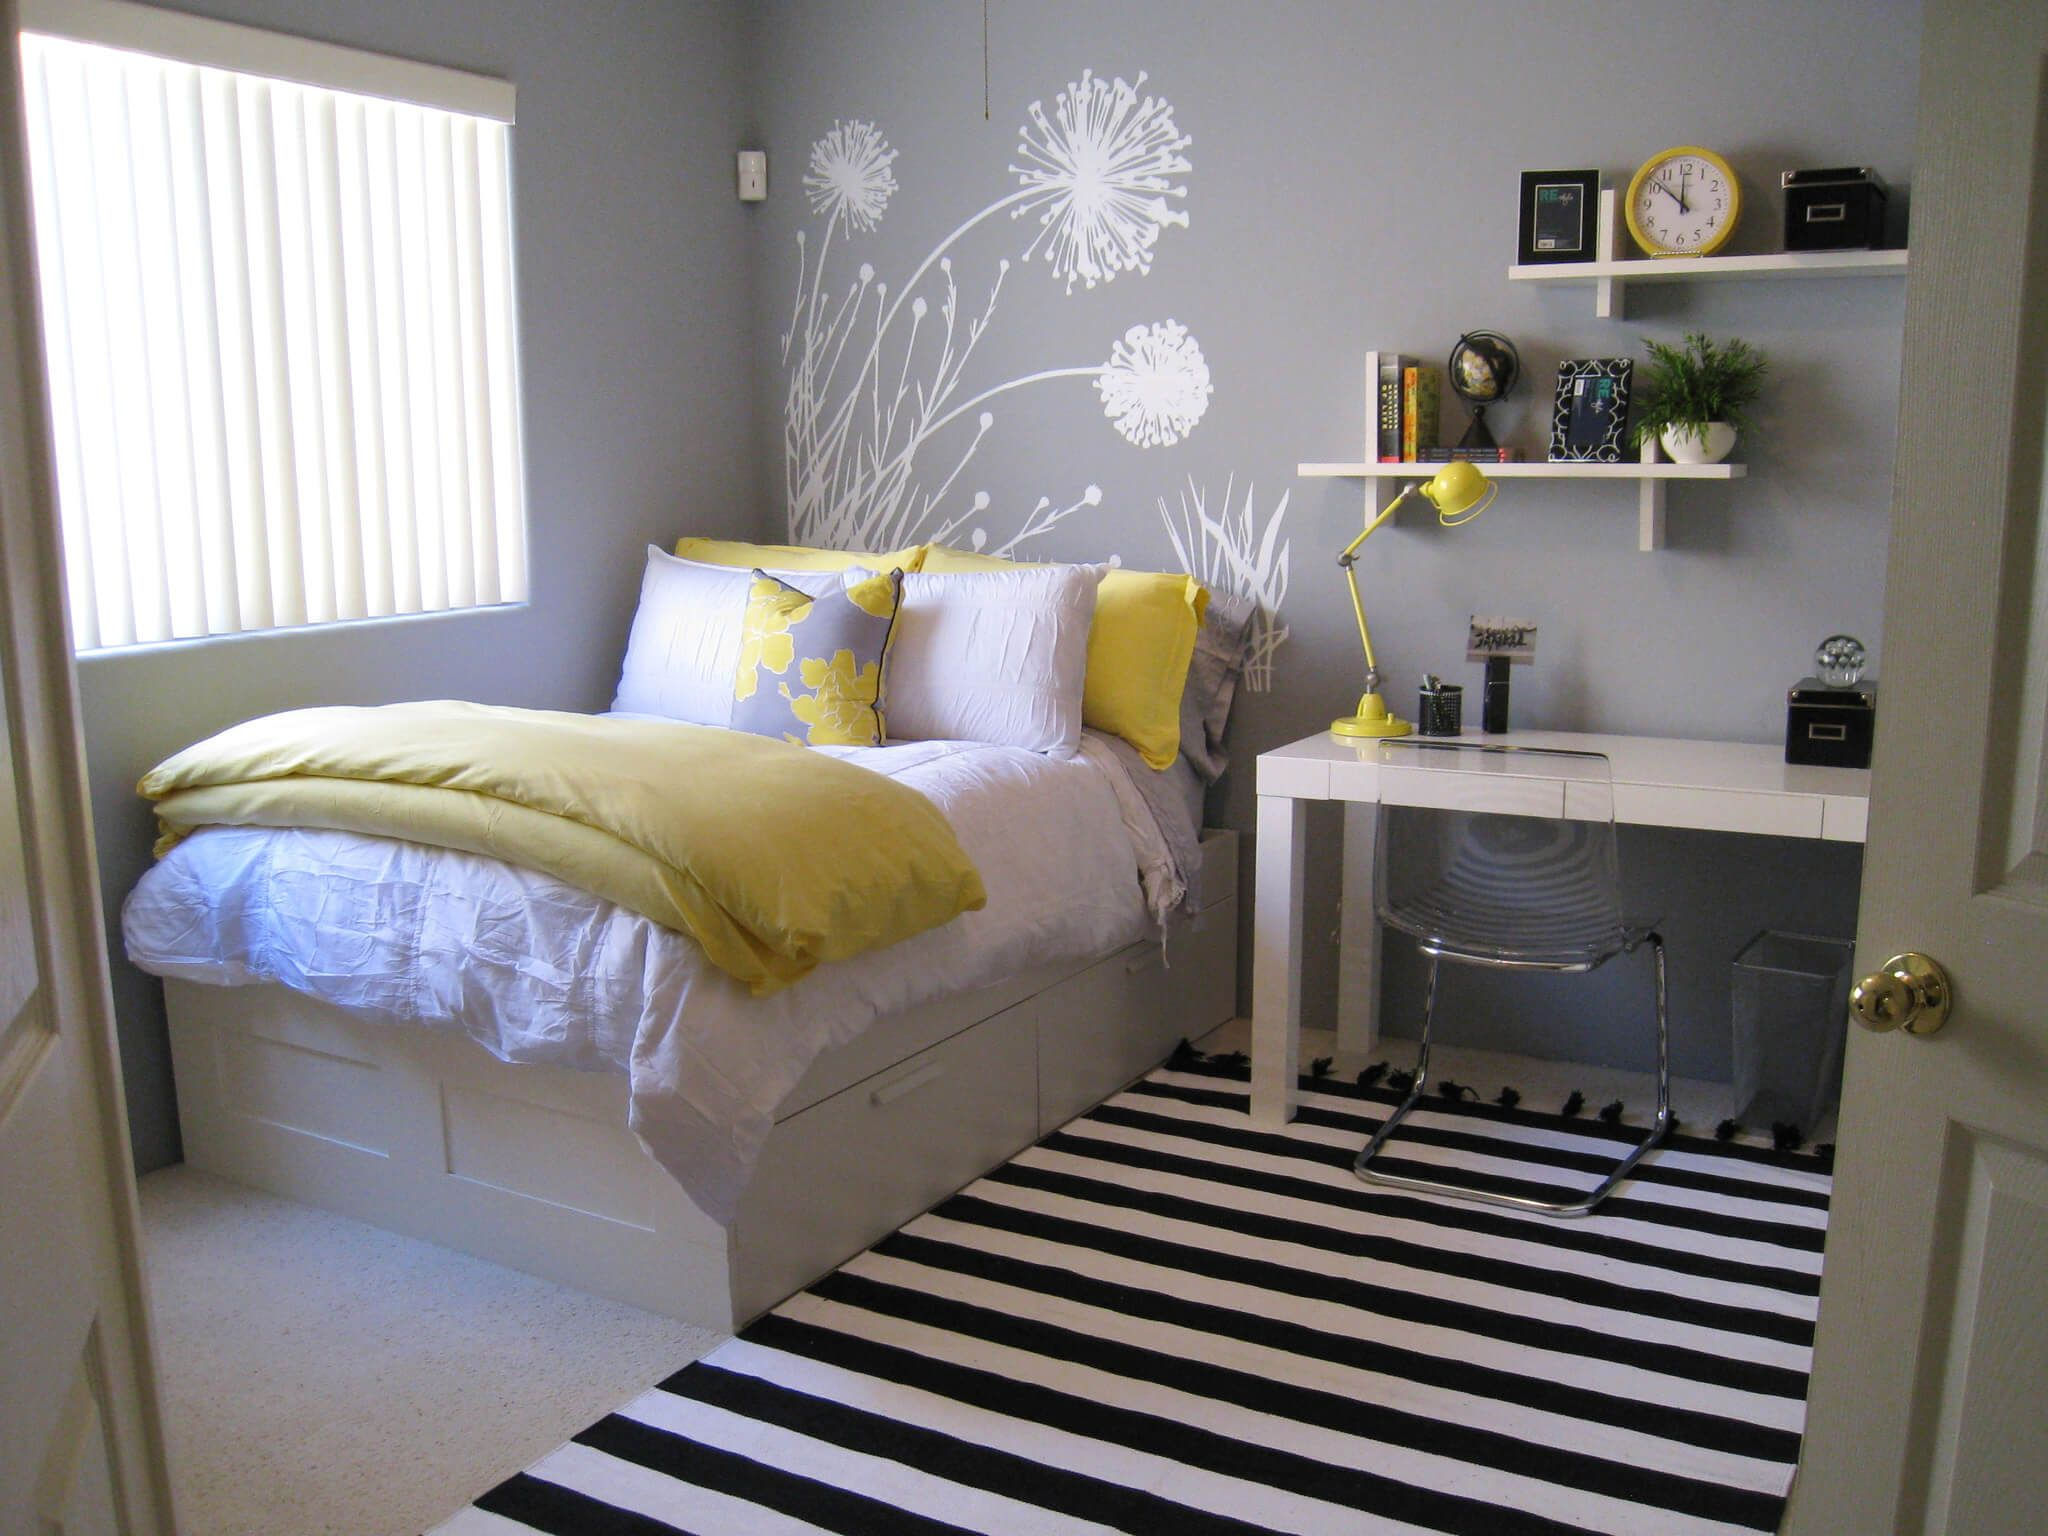 Very small bedroom solutions - 45 Inspiring Small Bedrooms